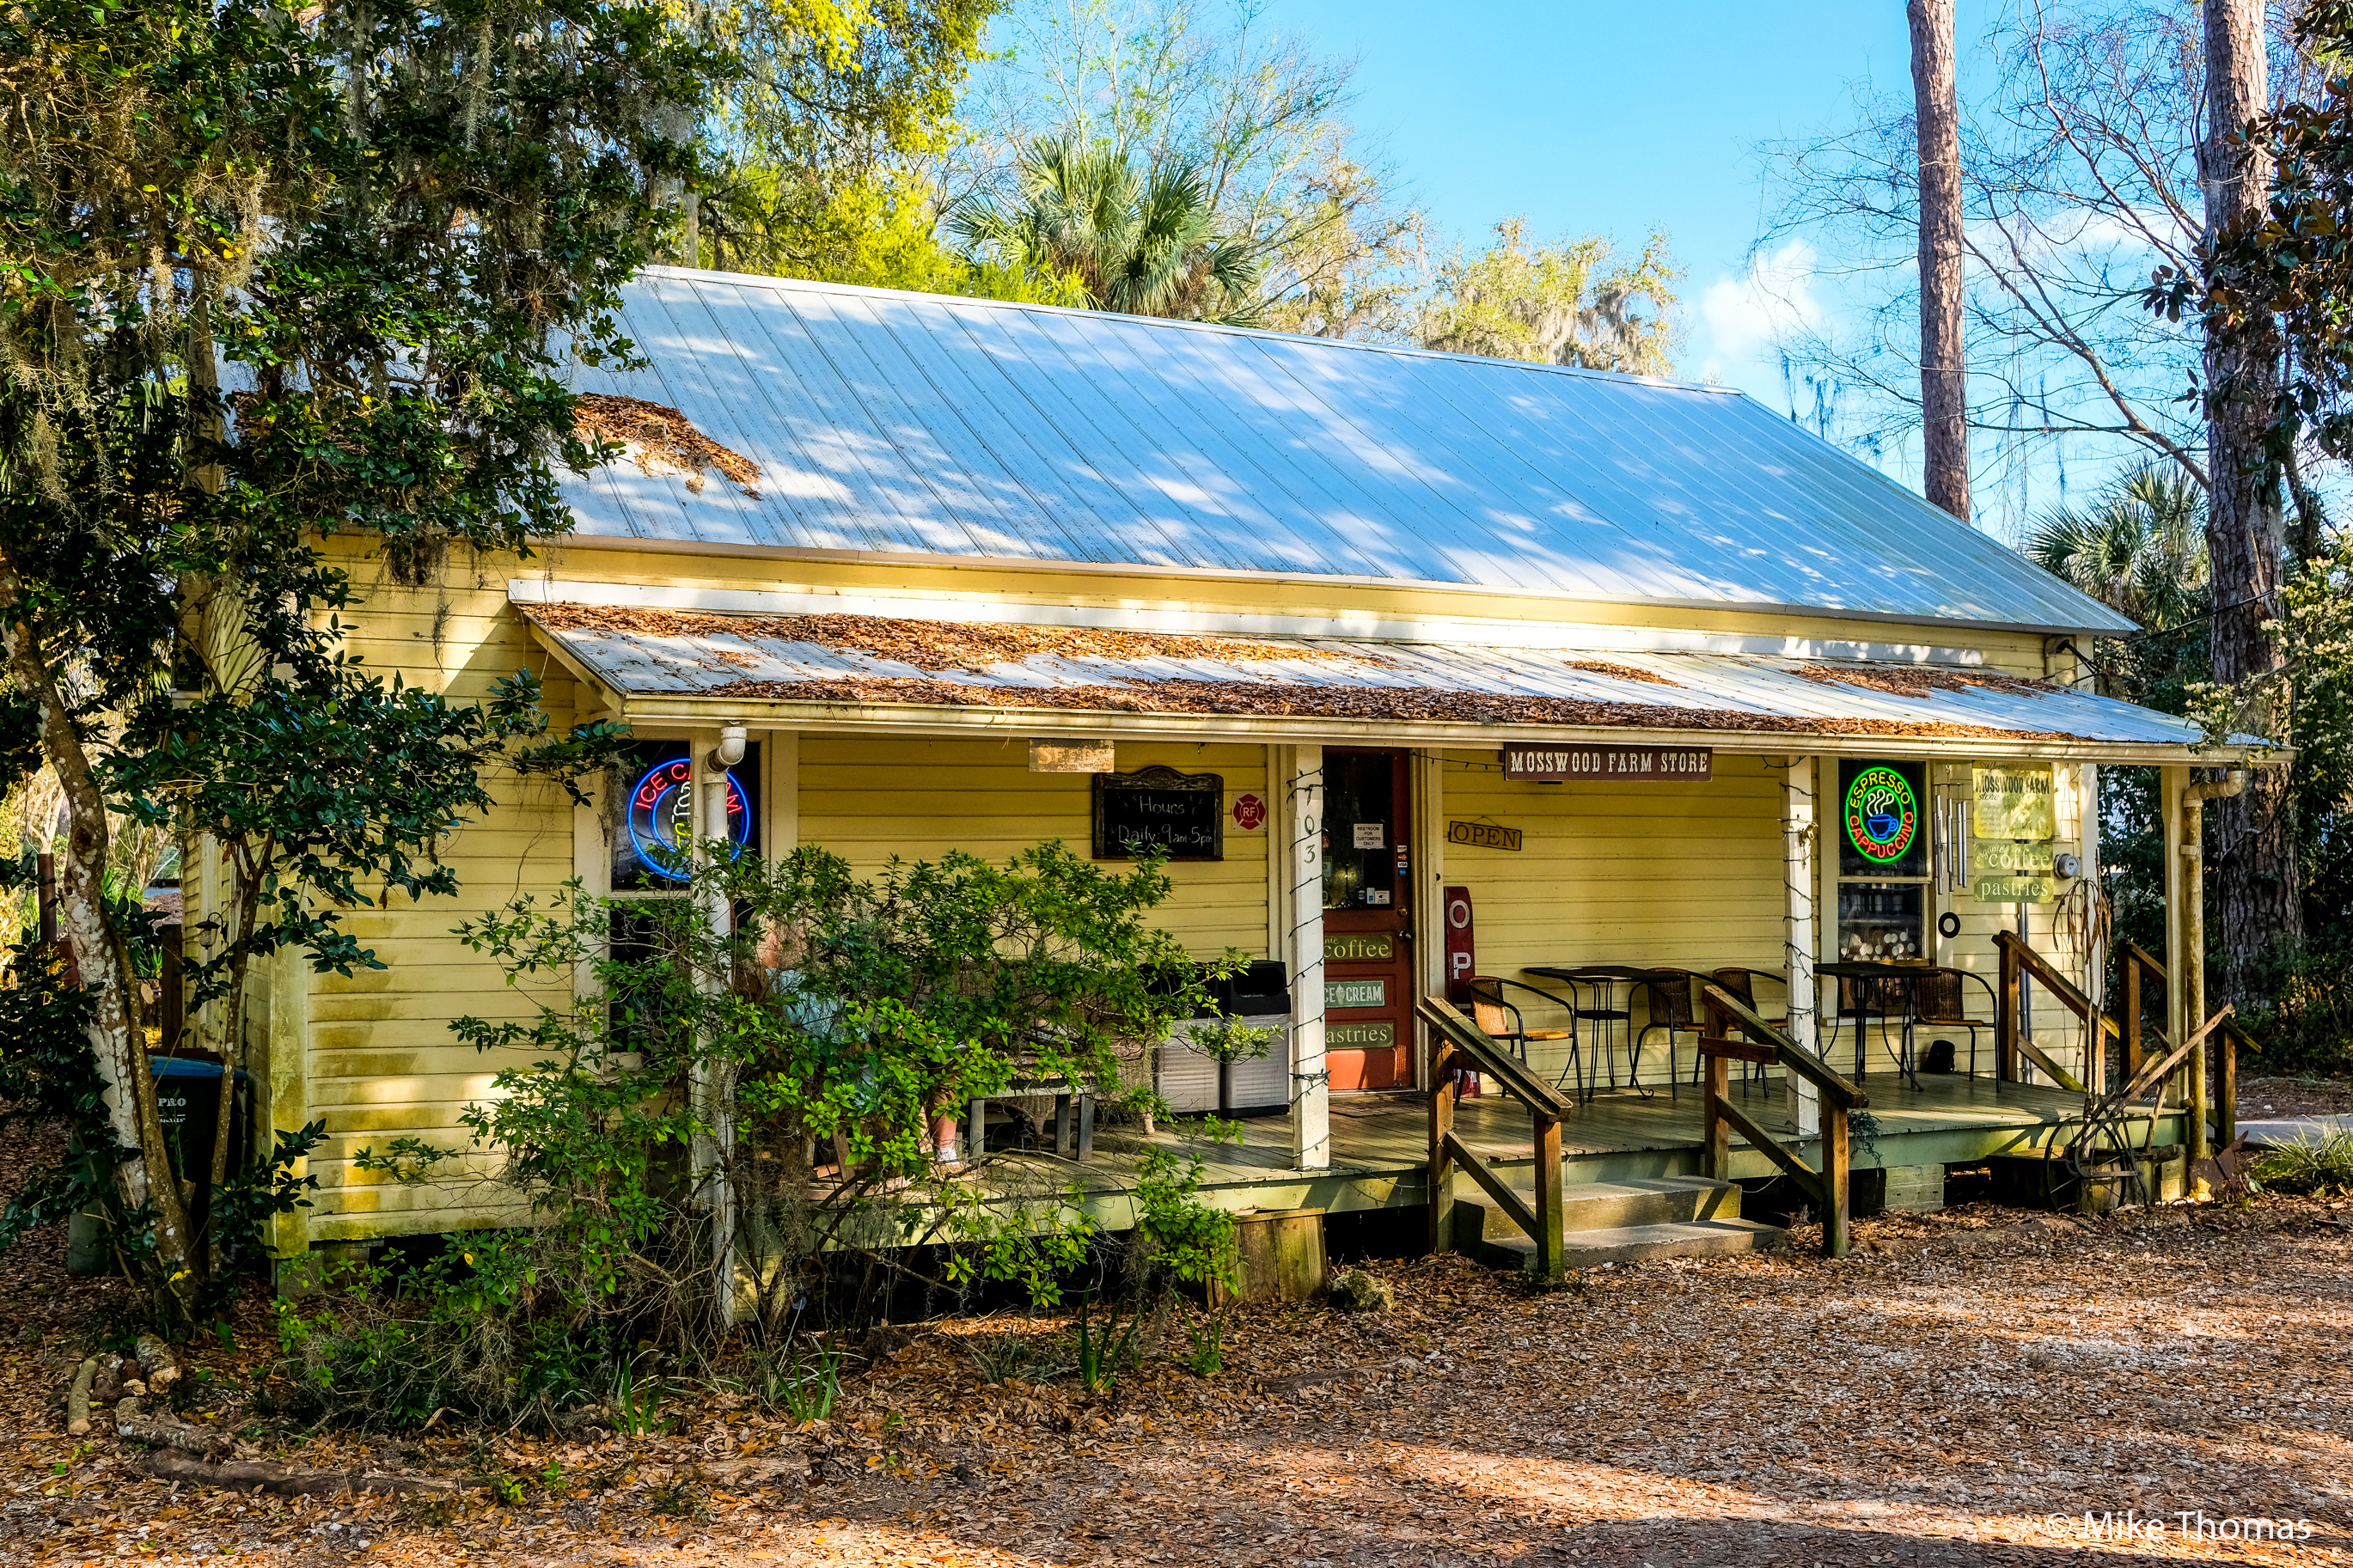 florida, micanopy, doc hollywood, cross creek, gainesville, general store